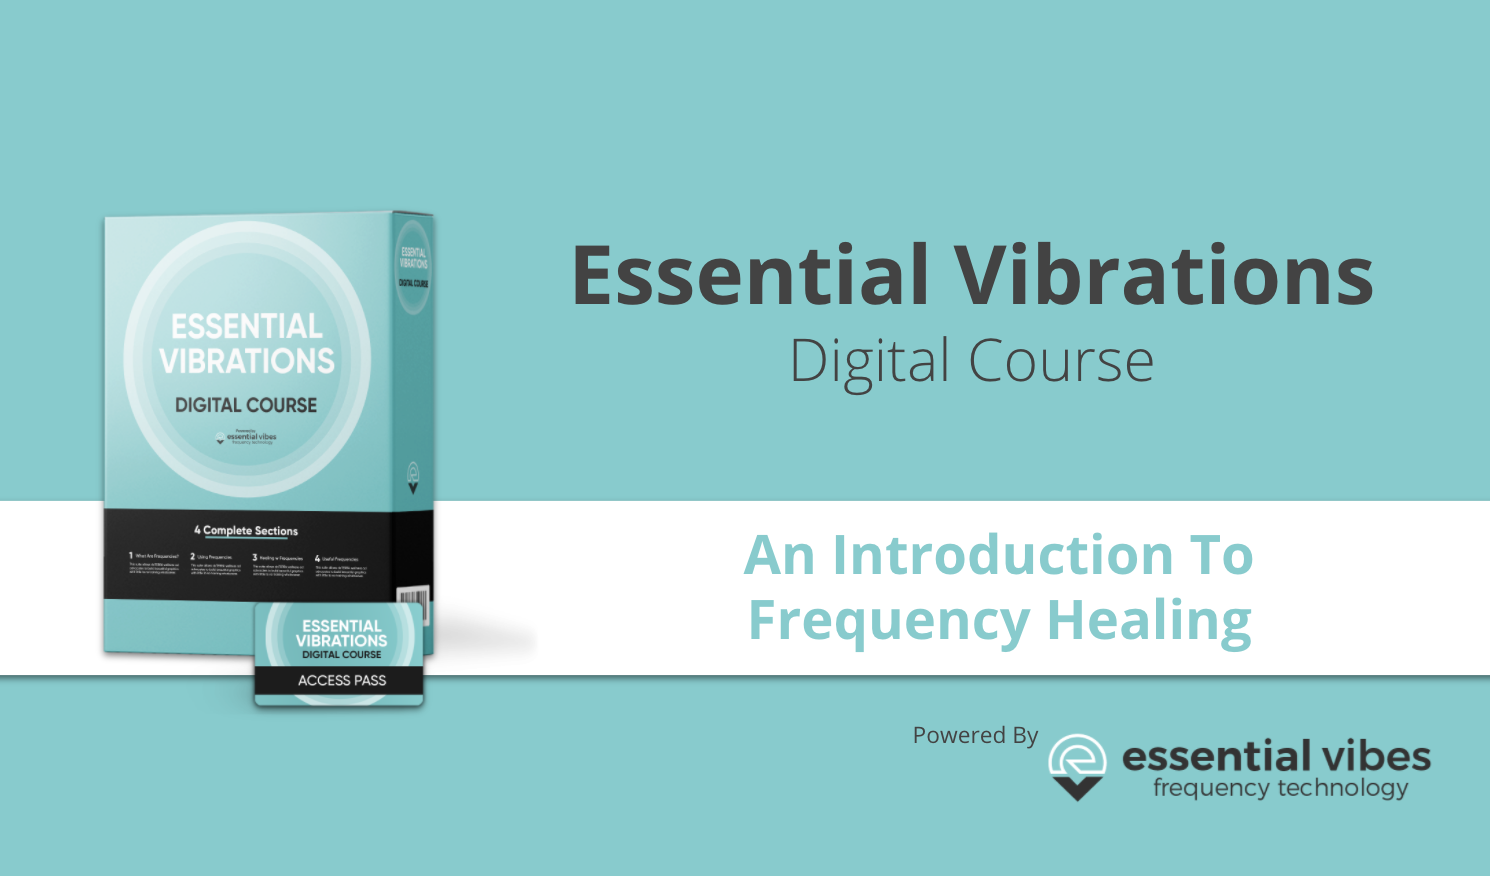 Essential Vibrations Frequency healing digital online course